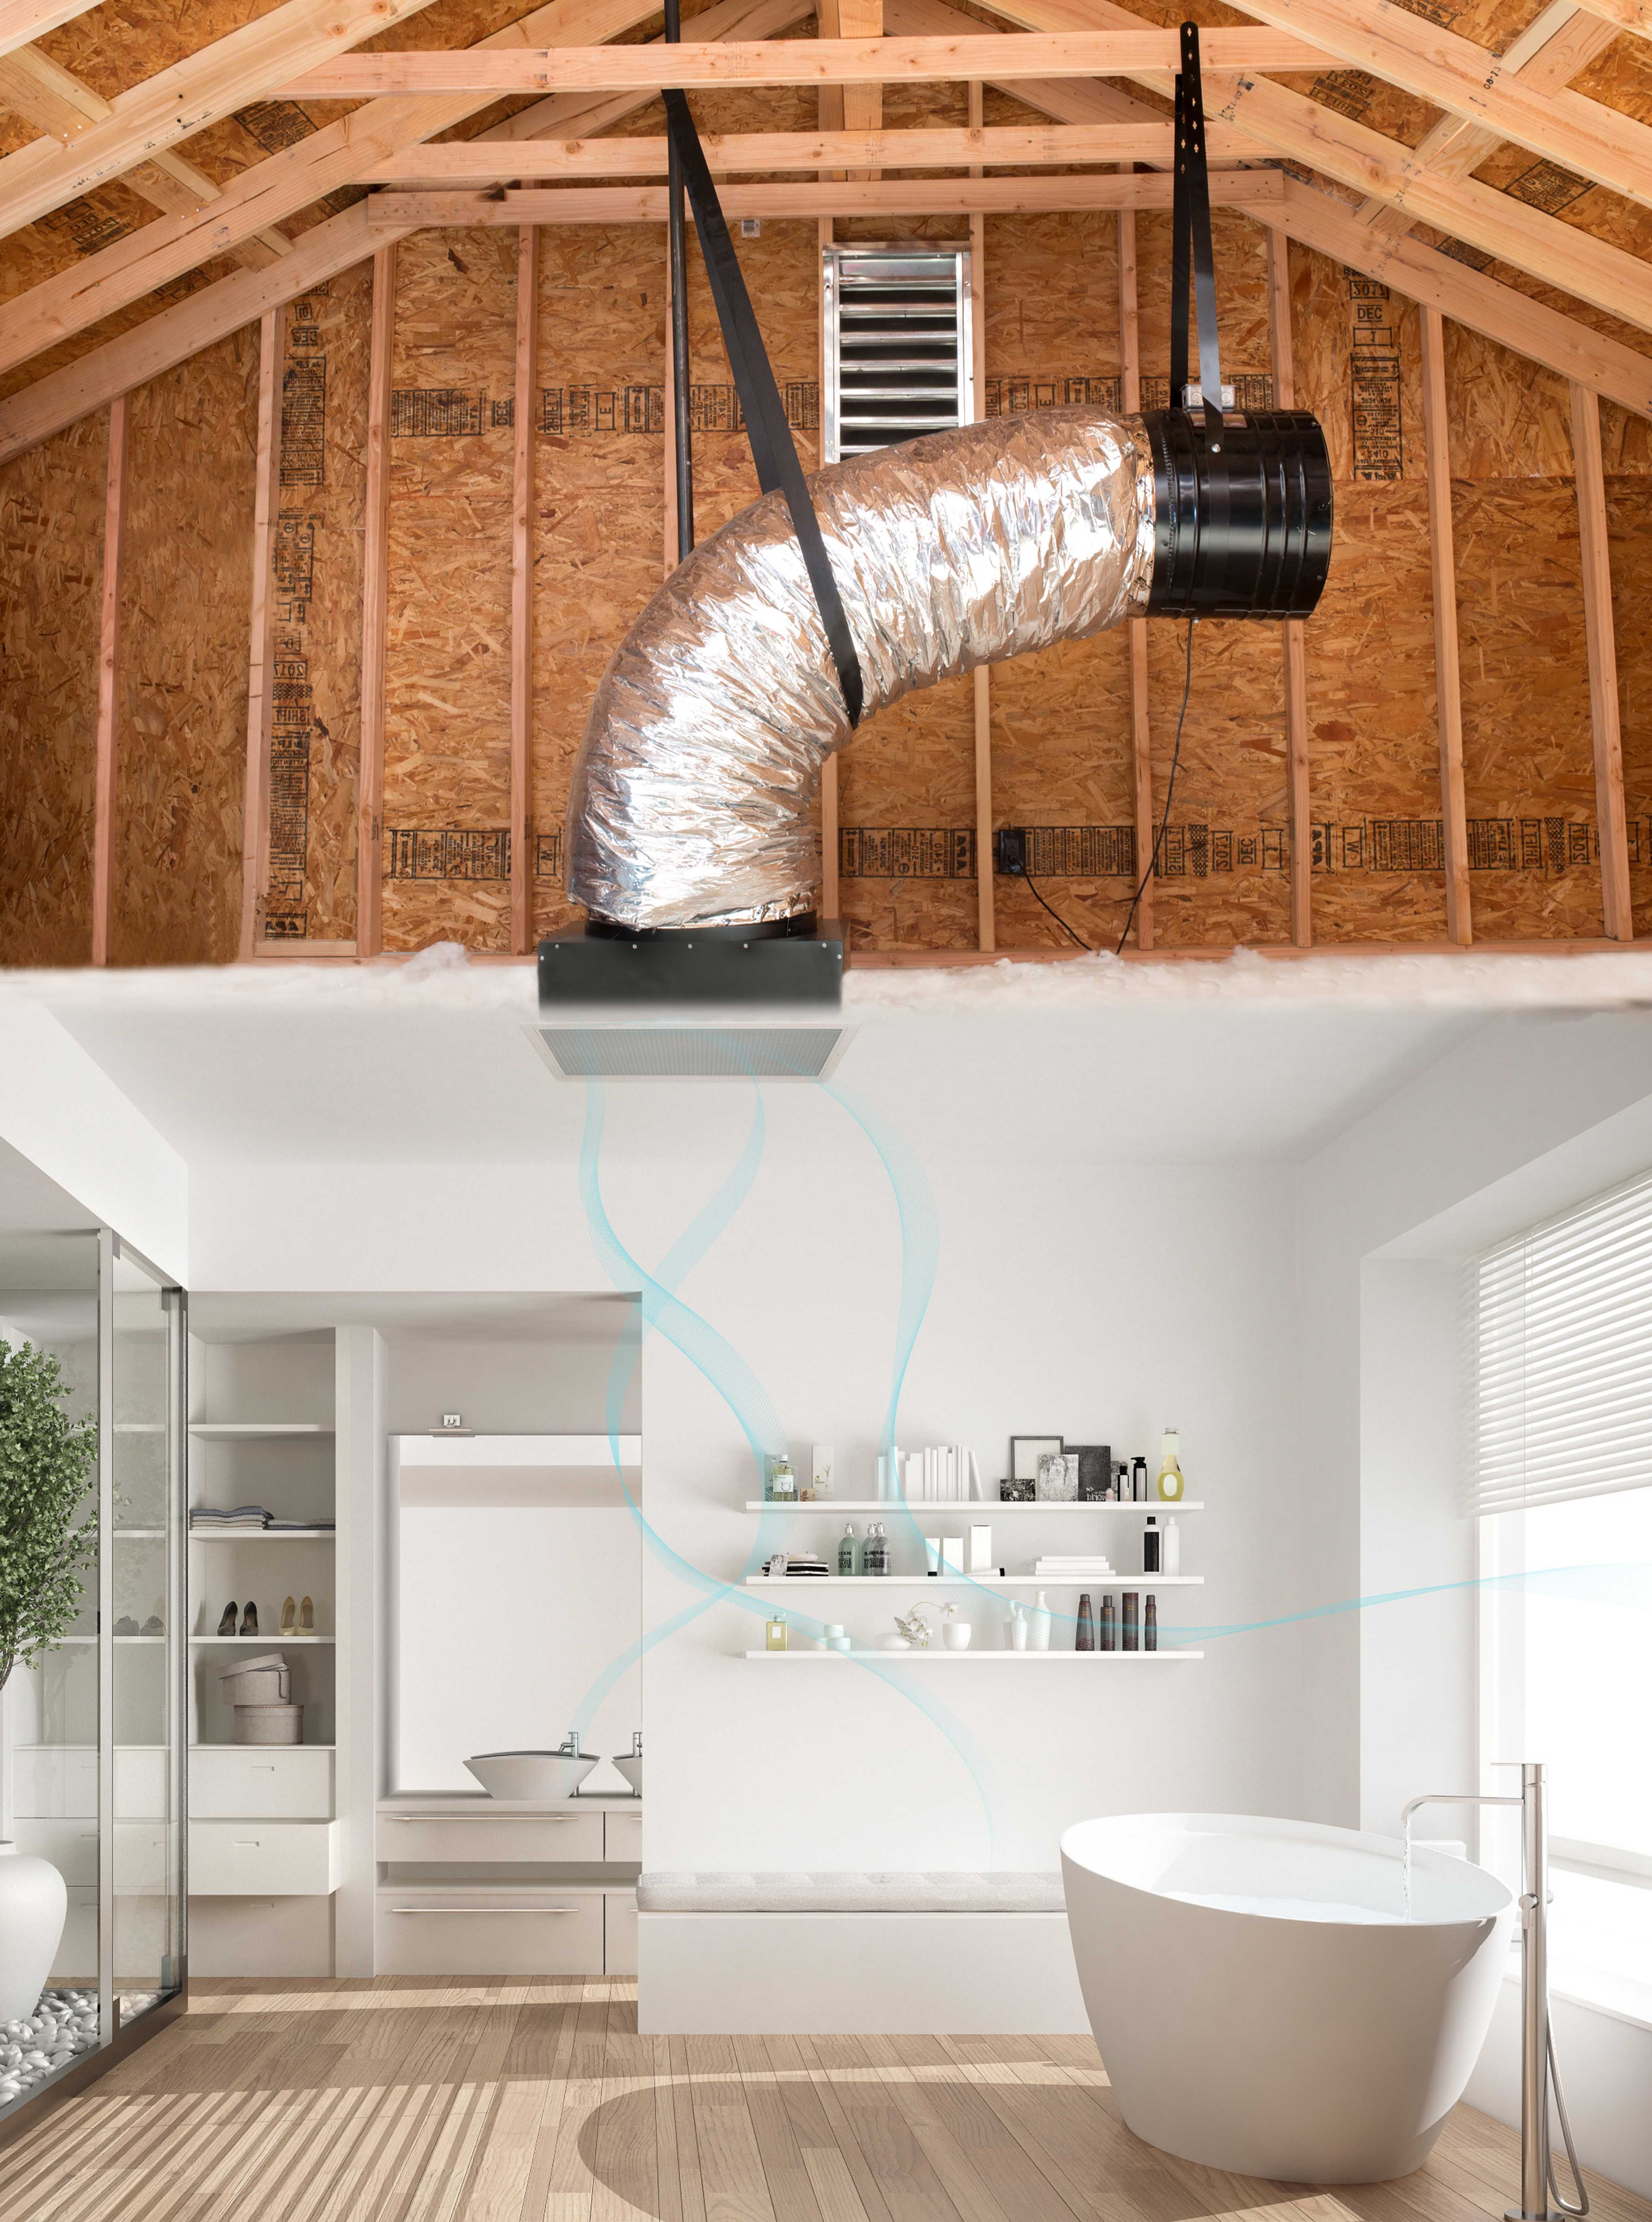 Install a whole house fan, bring the fresh cool air inside